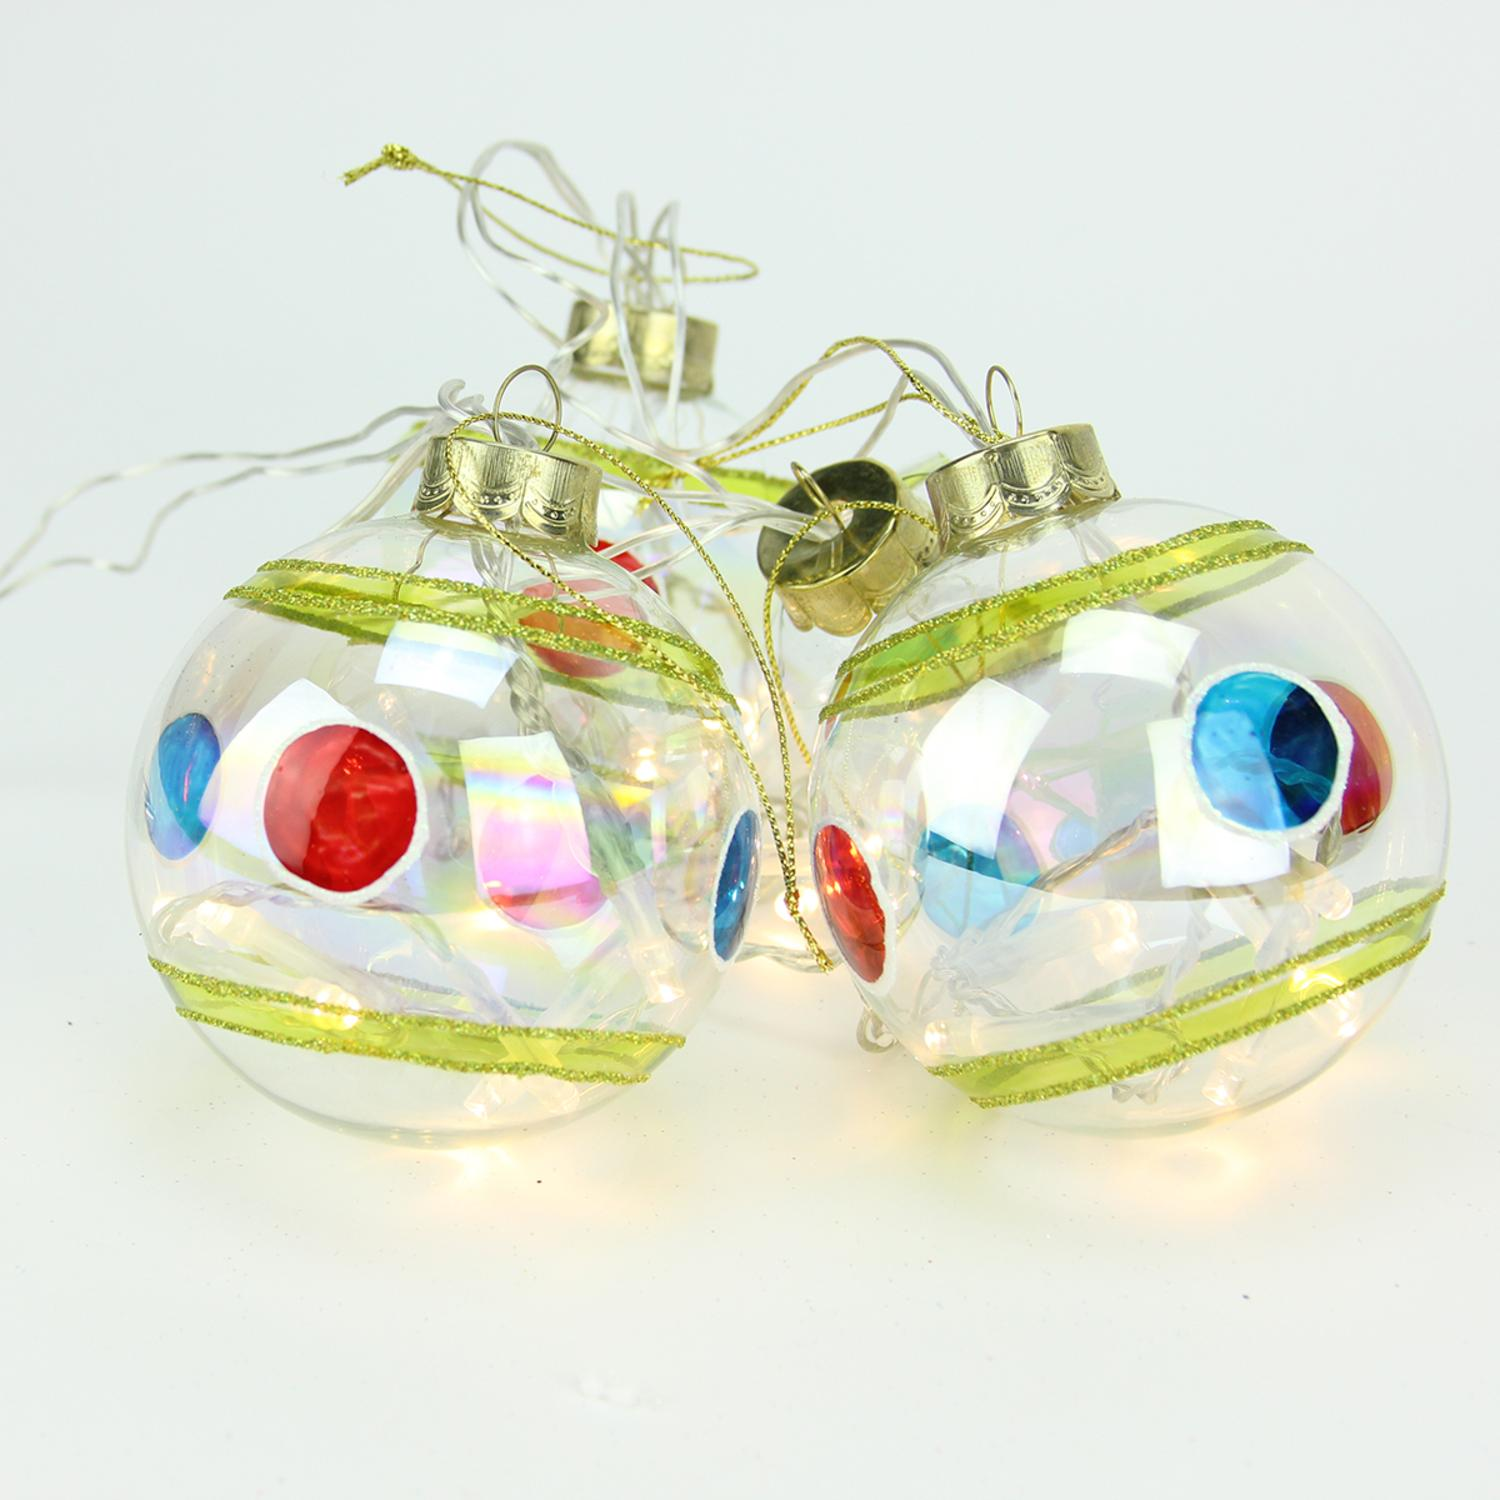 "Penn 4pc Stripe and Polka Dot Glass Ball LED Lighted Christmas Ornament Set 3.25"" - Clear"